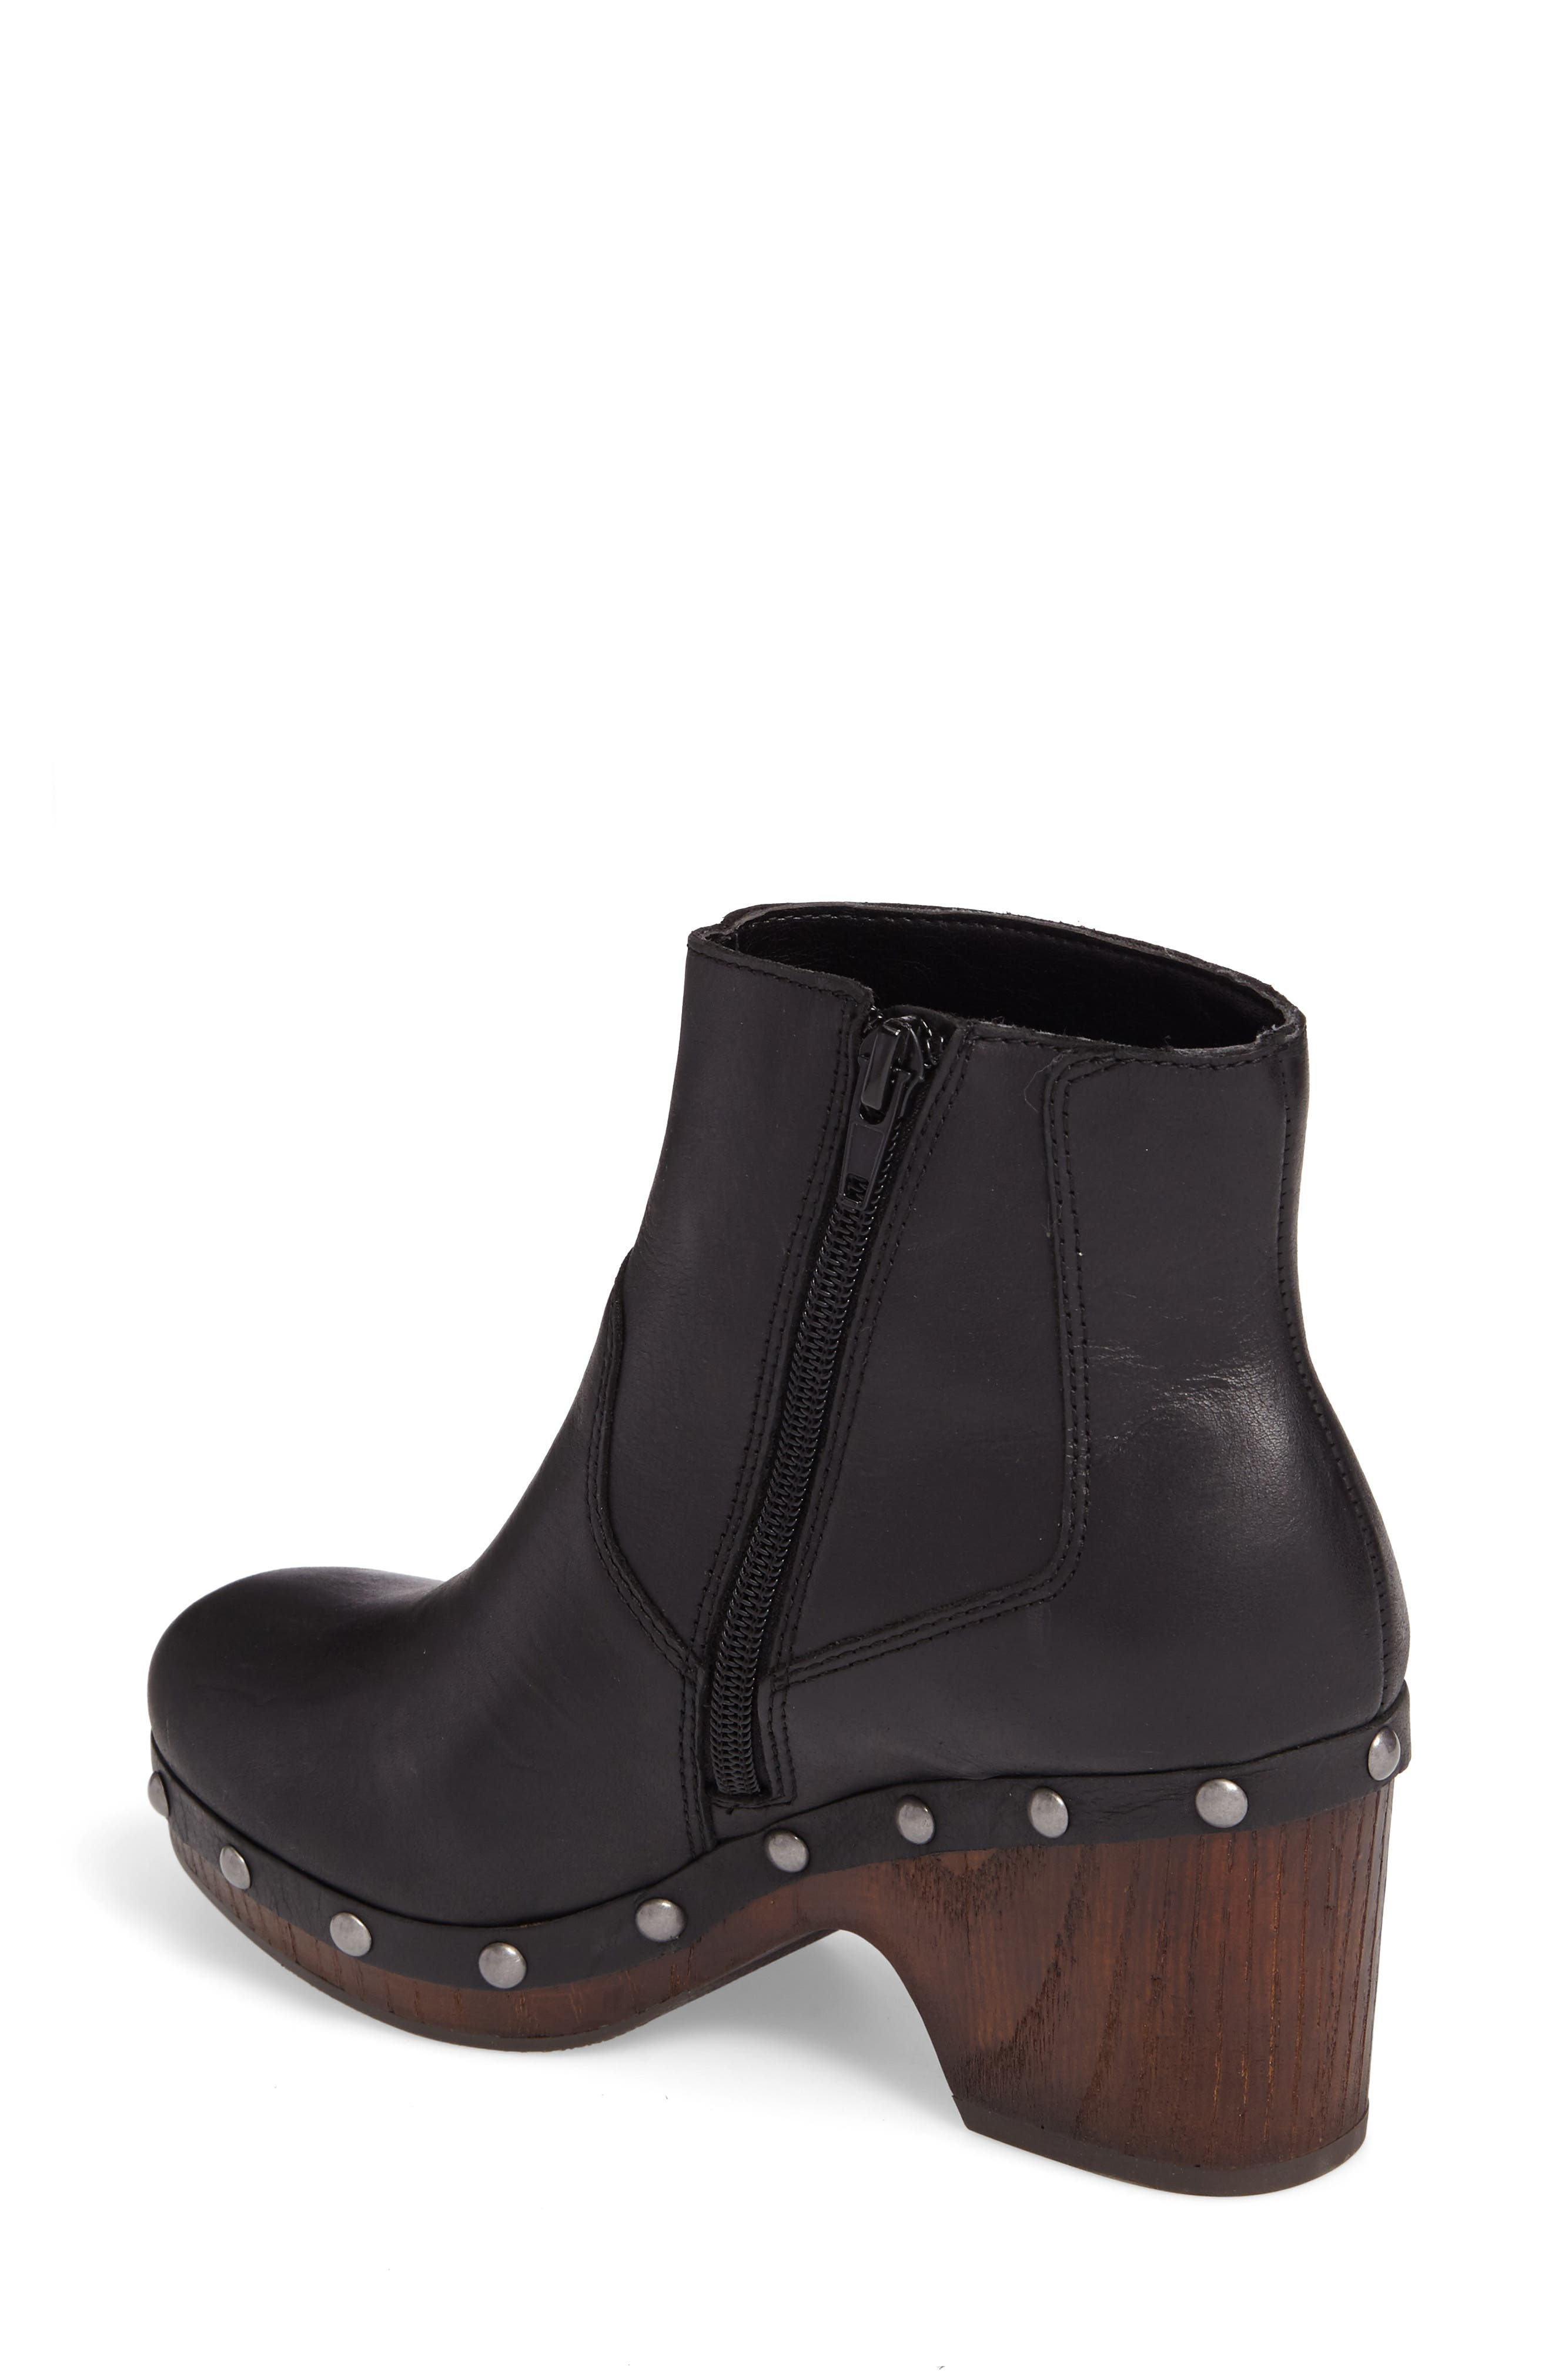 Yasamin Bootie,                             Alternate thumbnail 2, color,                             Black Leather